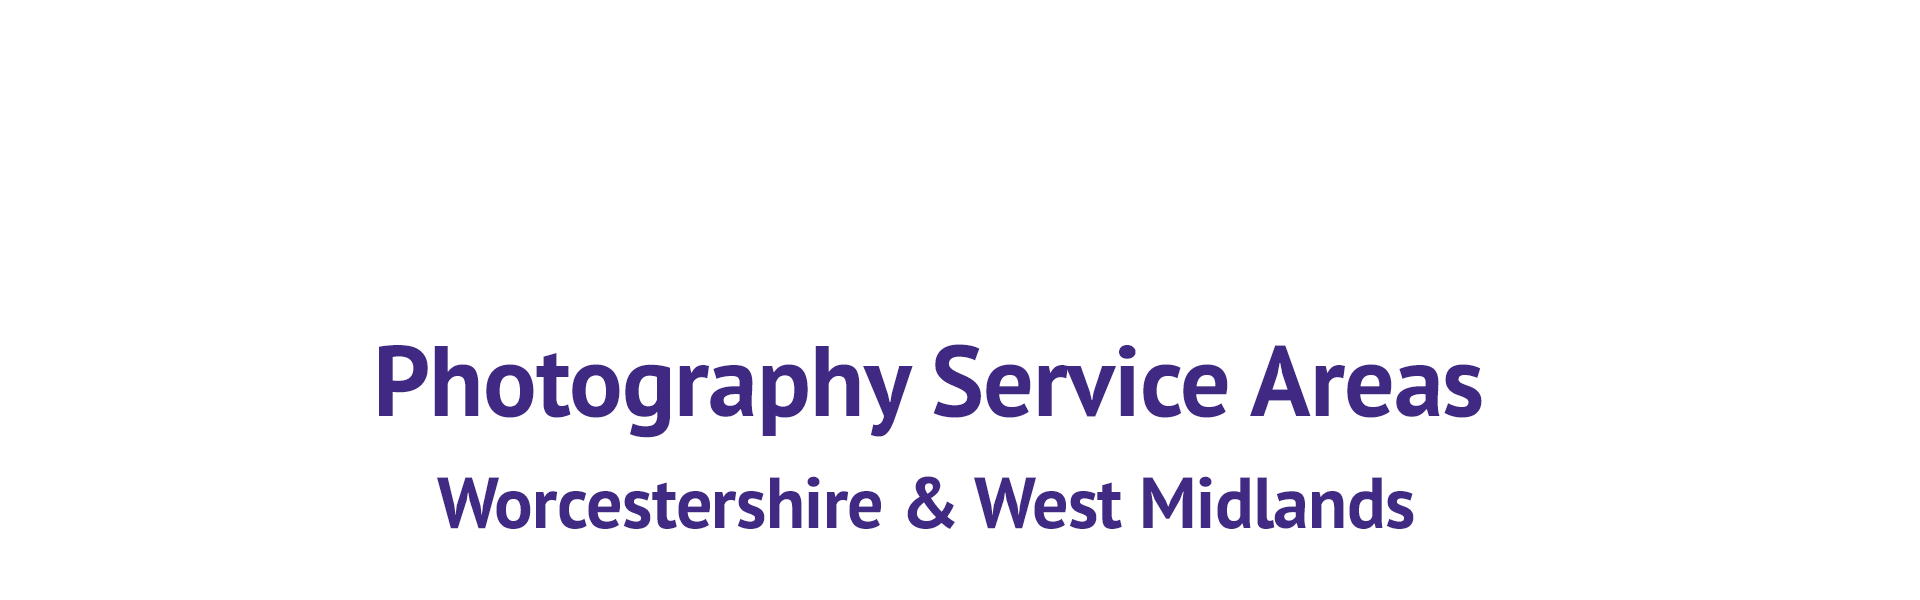 Photography Service Areas Worcestershire & West Midlands